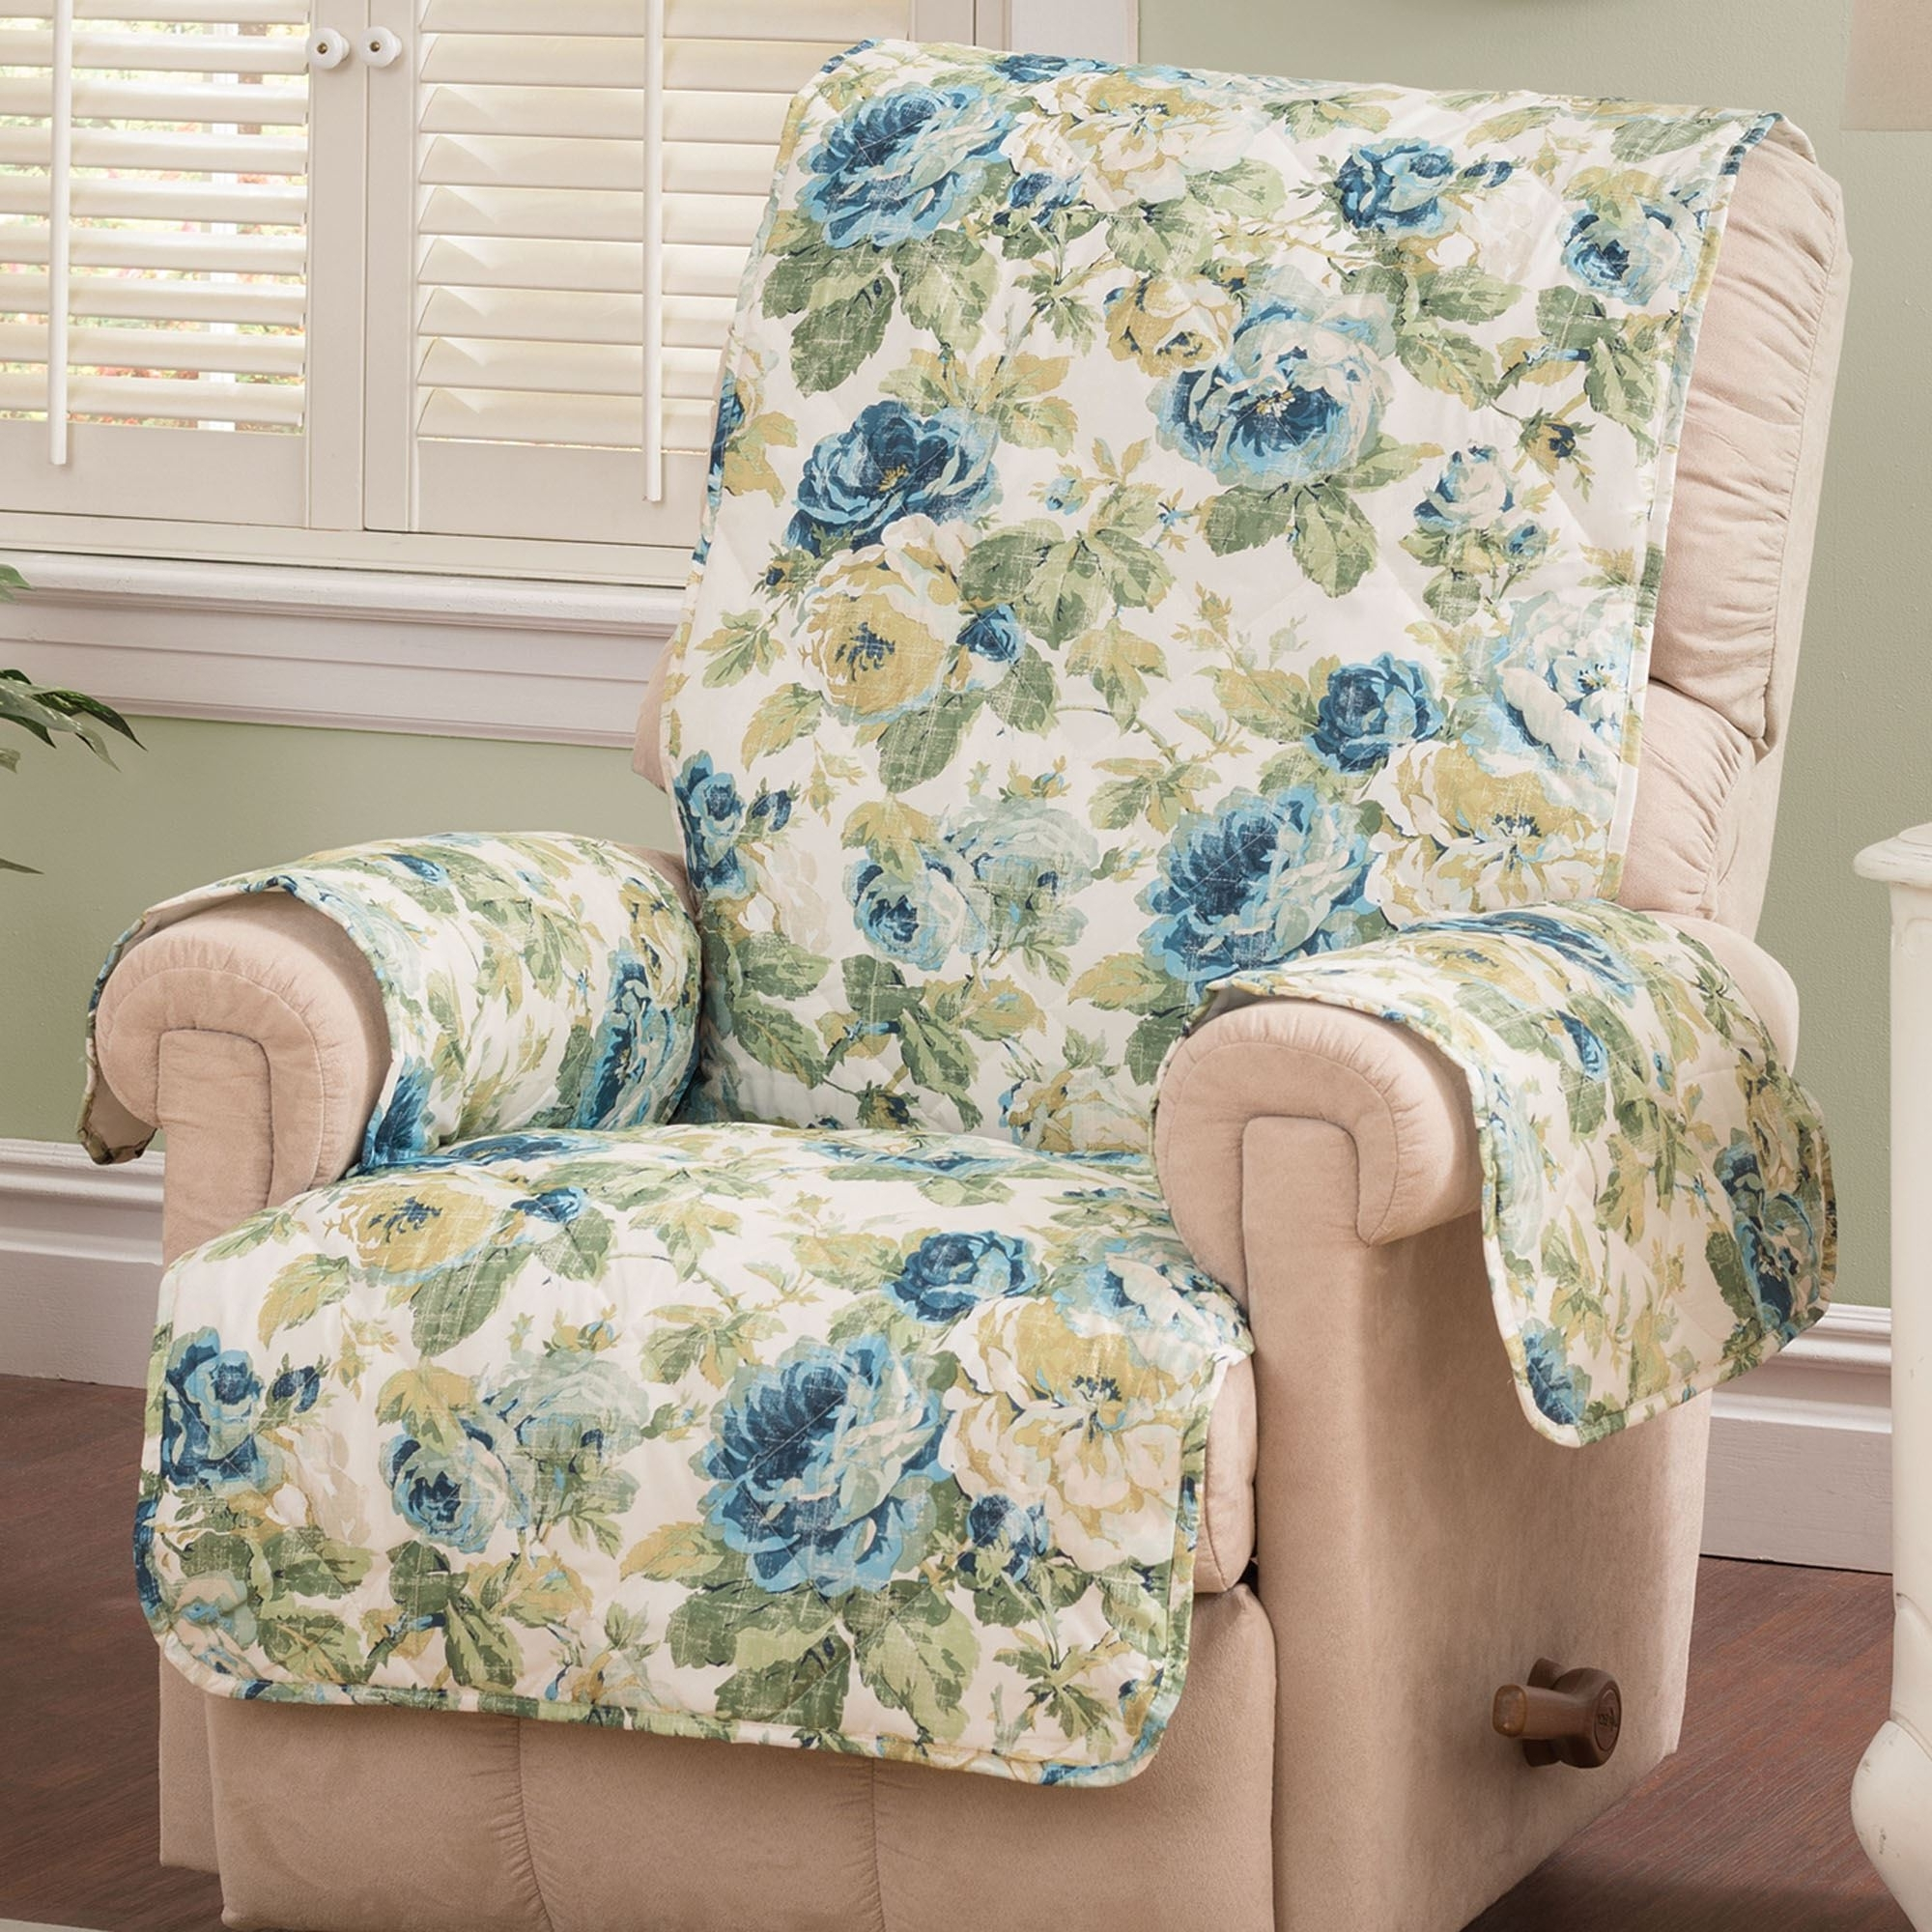 Floral Sofas And Chairs Throughout Most Recent English Floral Sky Blue Quilted Furniture Protectors Protector (View 9 of 20)